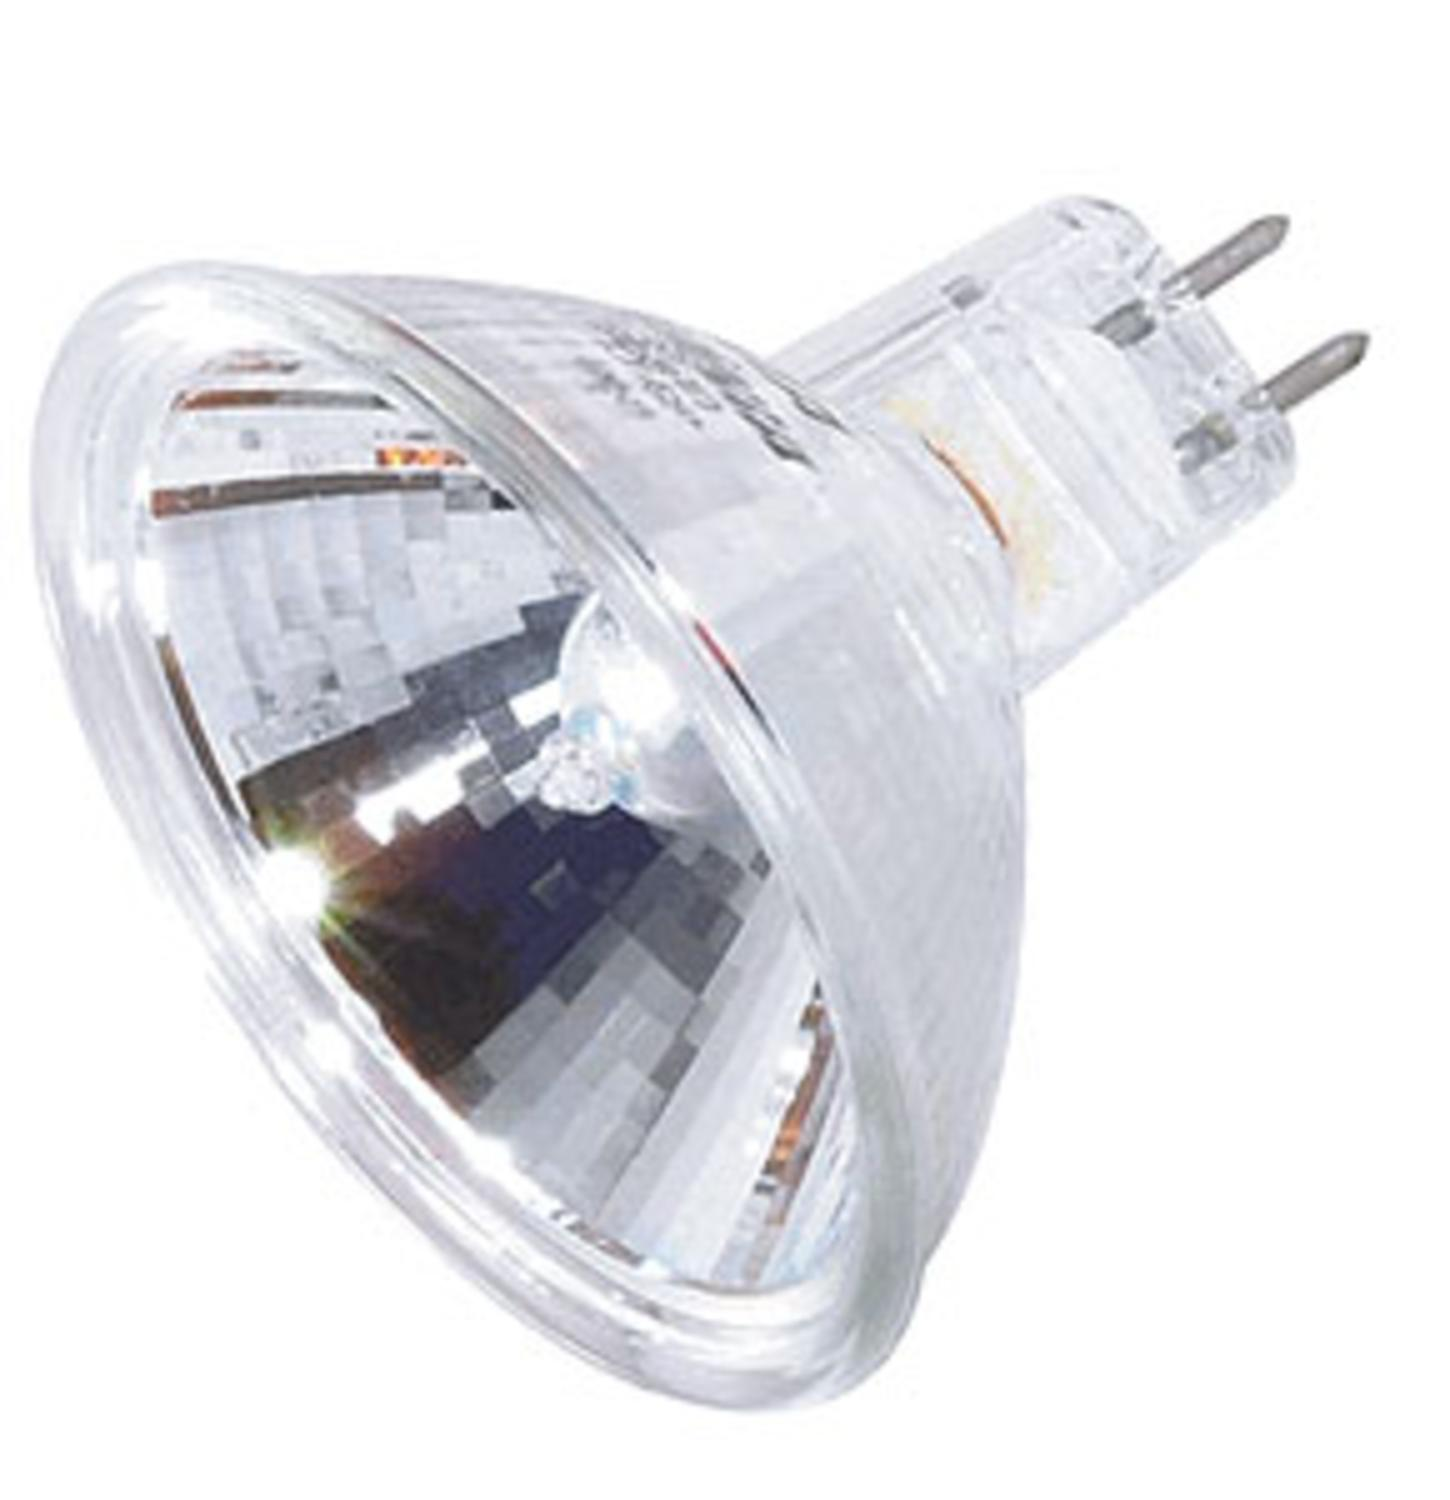 15 Watt 12 Volts Halogen Fiber Optic Christmas Tree Clear Replacement Light Bulb